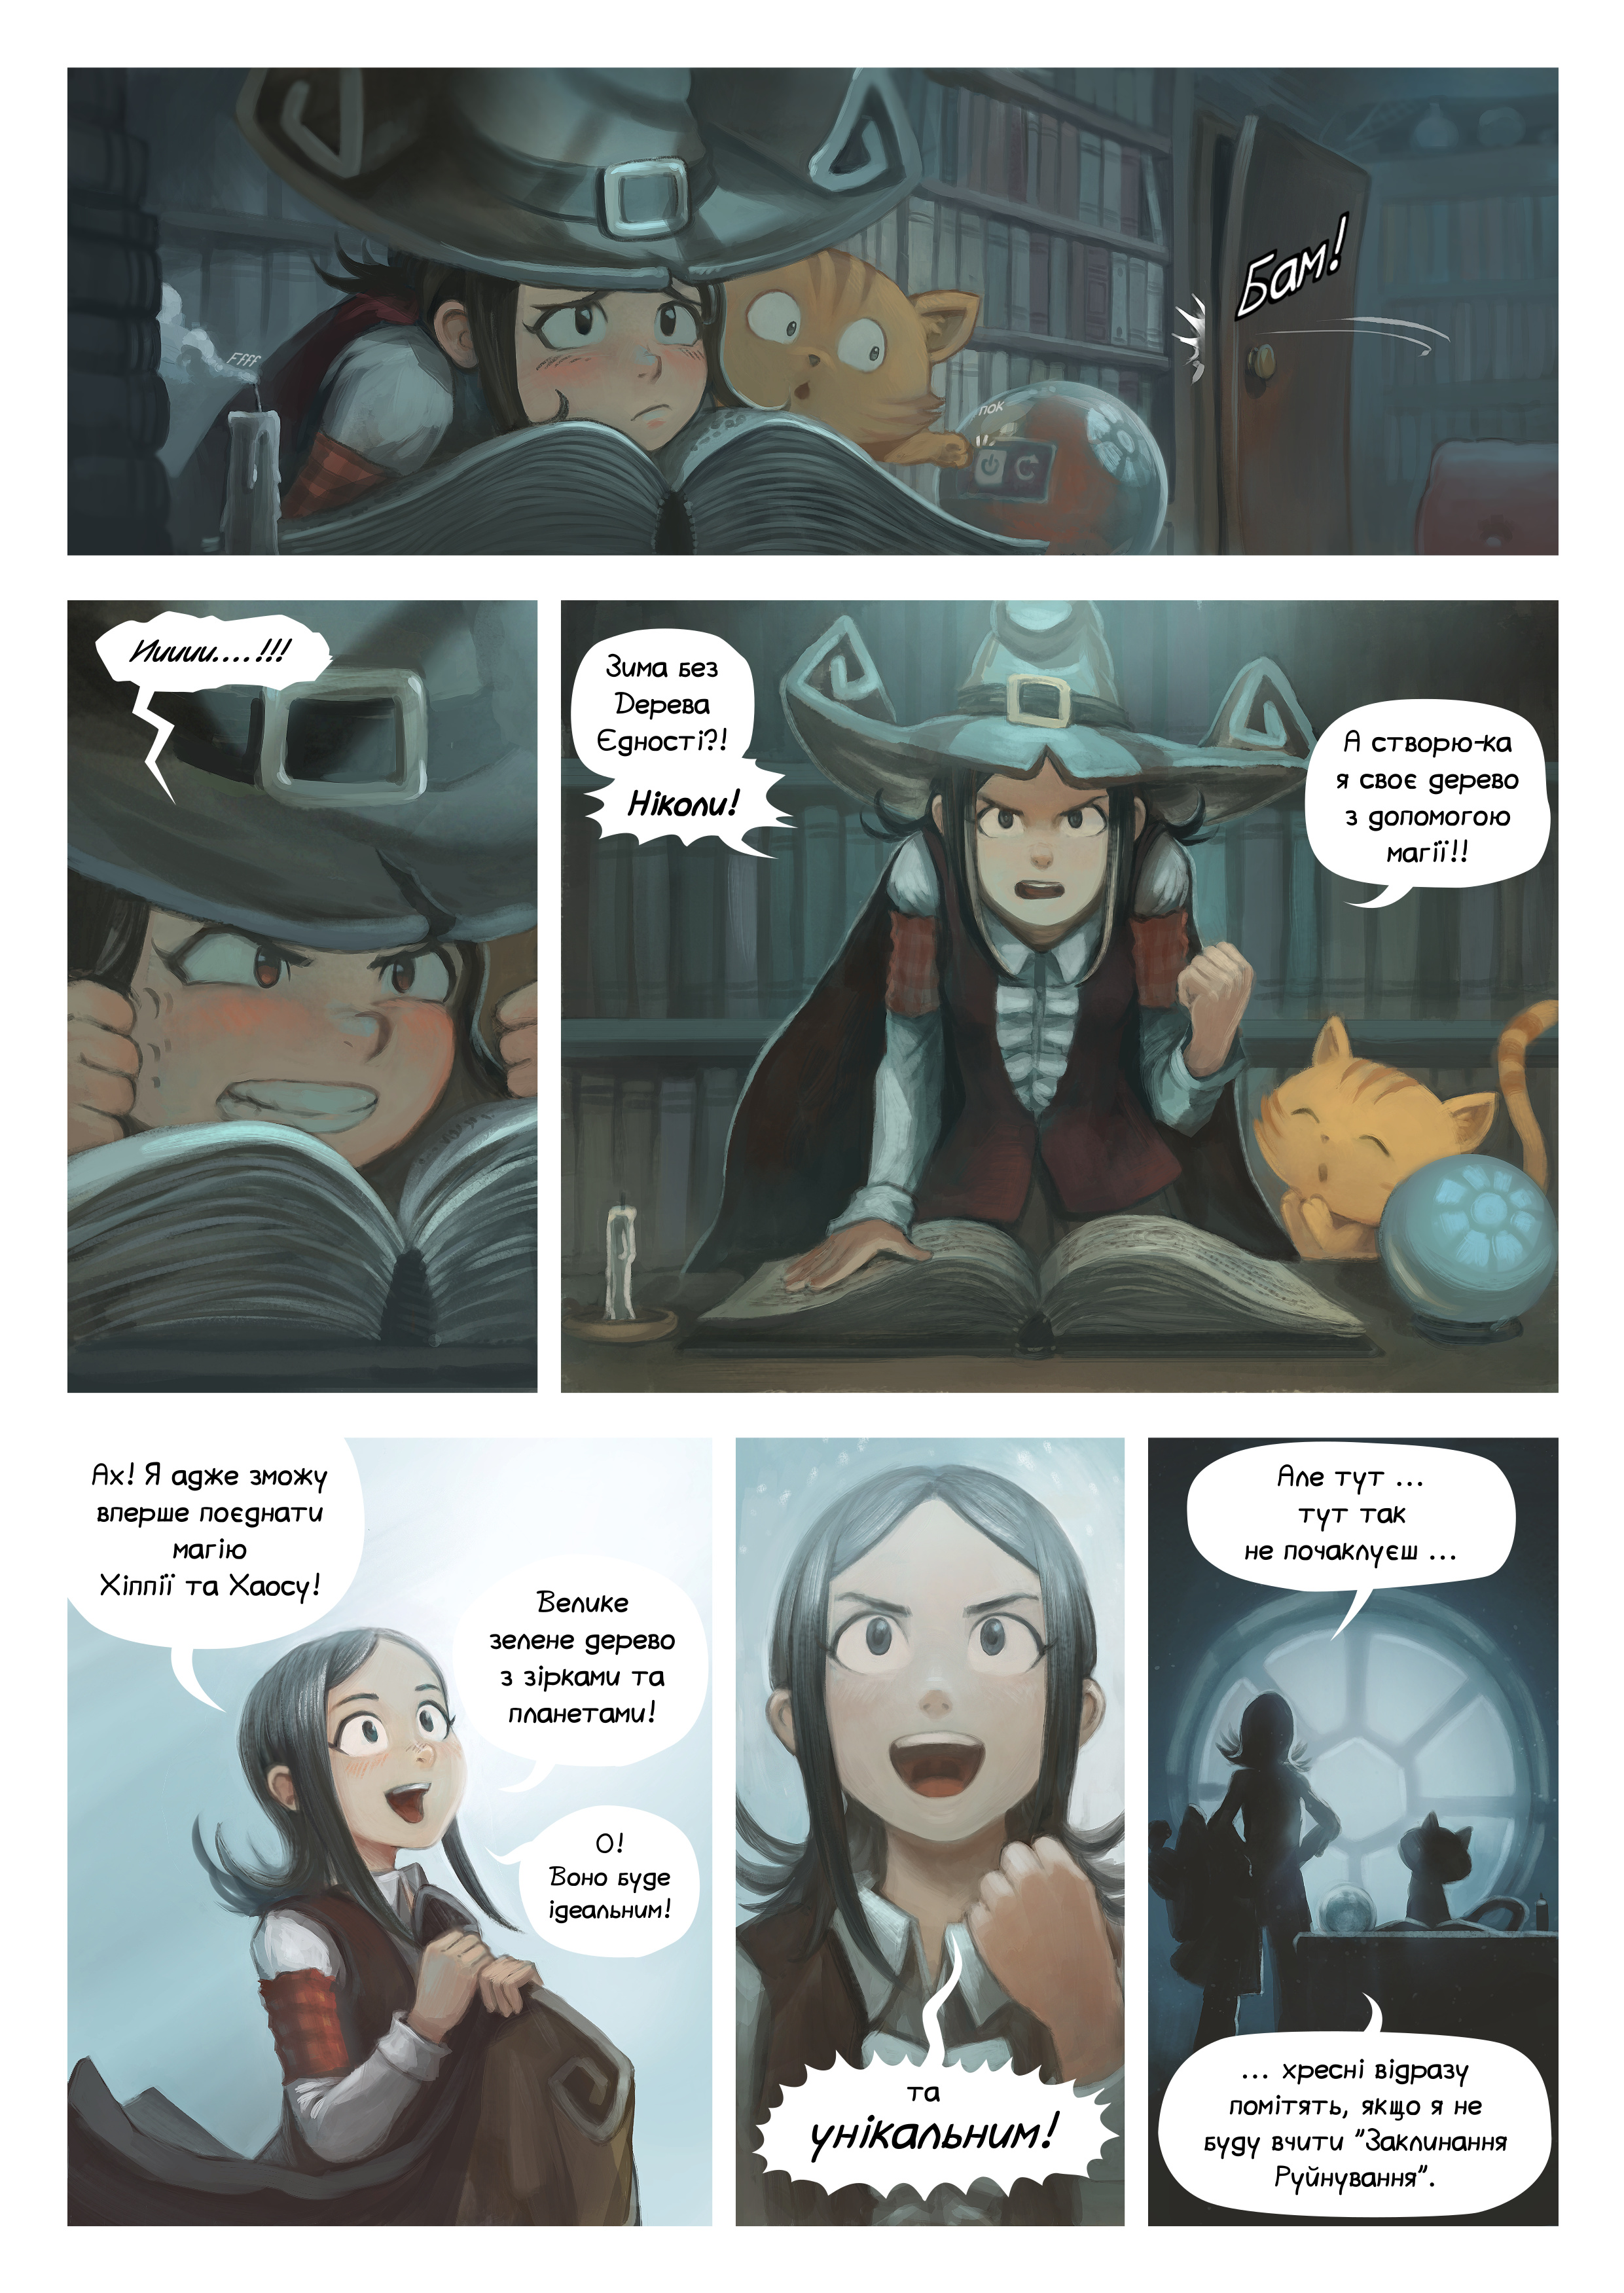 A webcomic page of Pepper&Carrot, епізод 24 [uk], стор. 2